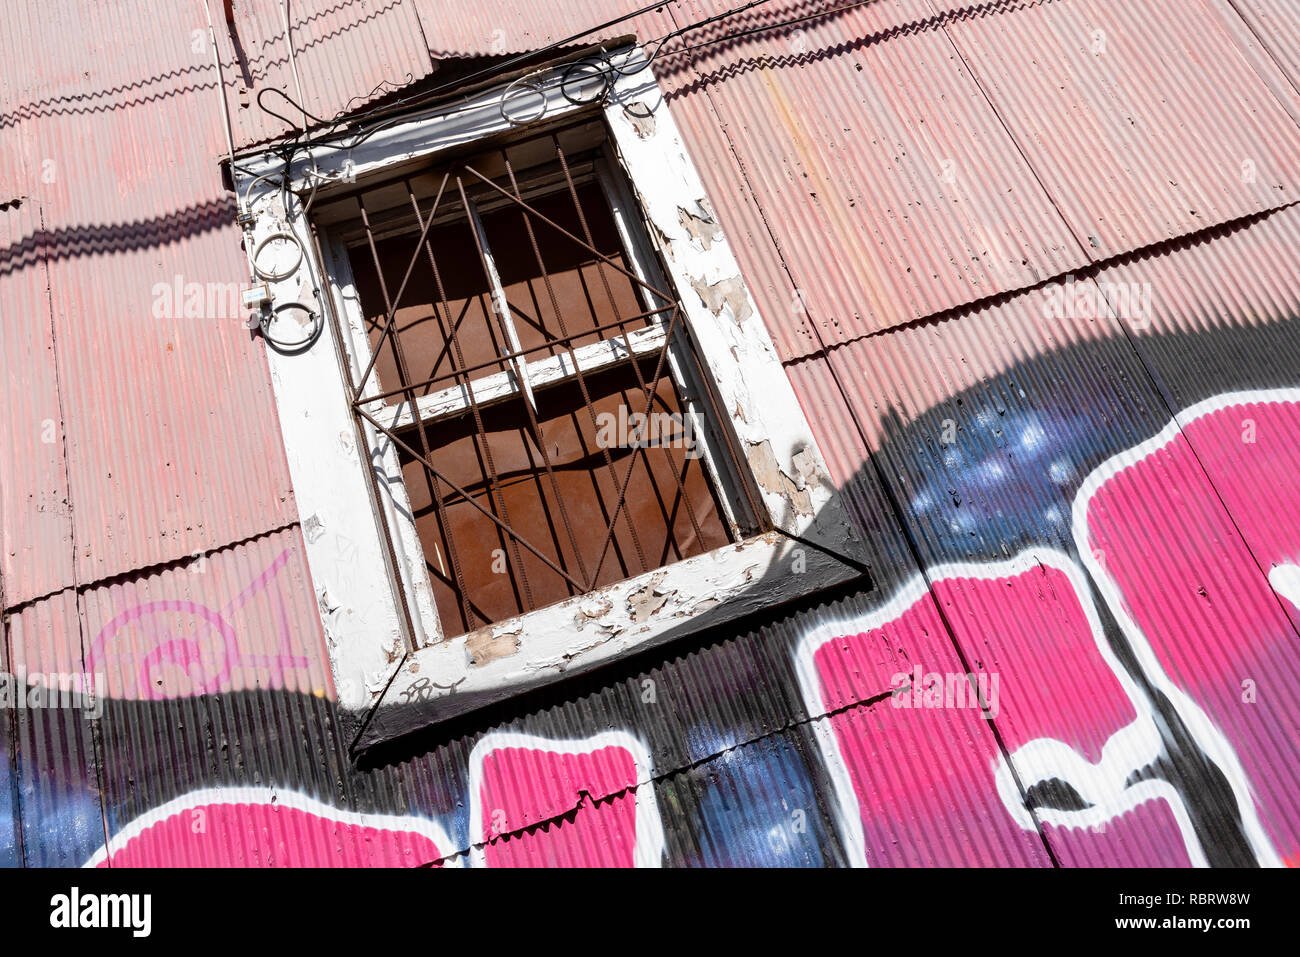 A window of a building clad in metal sheeting in Valparaiso, Chile. - Stock Image